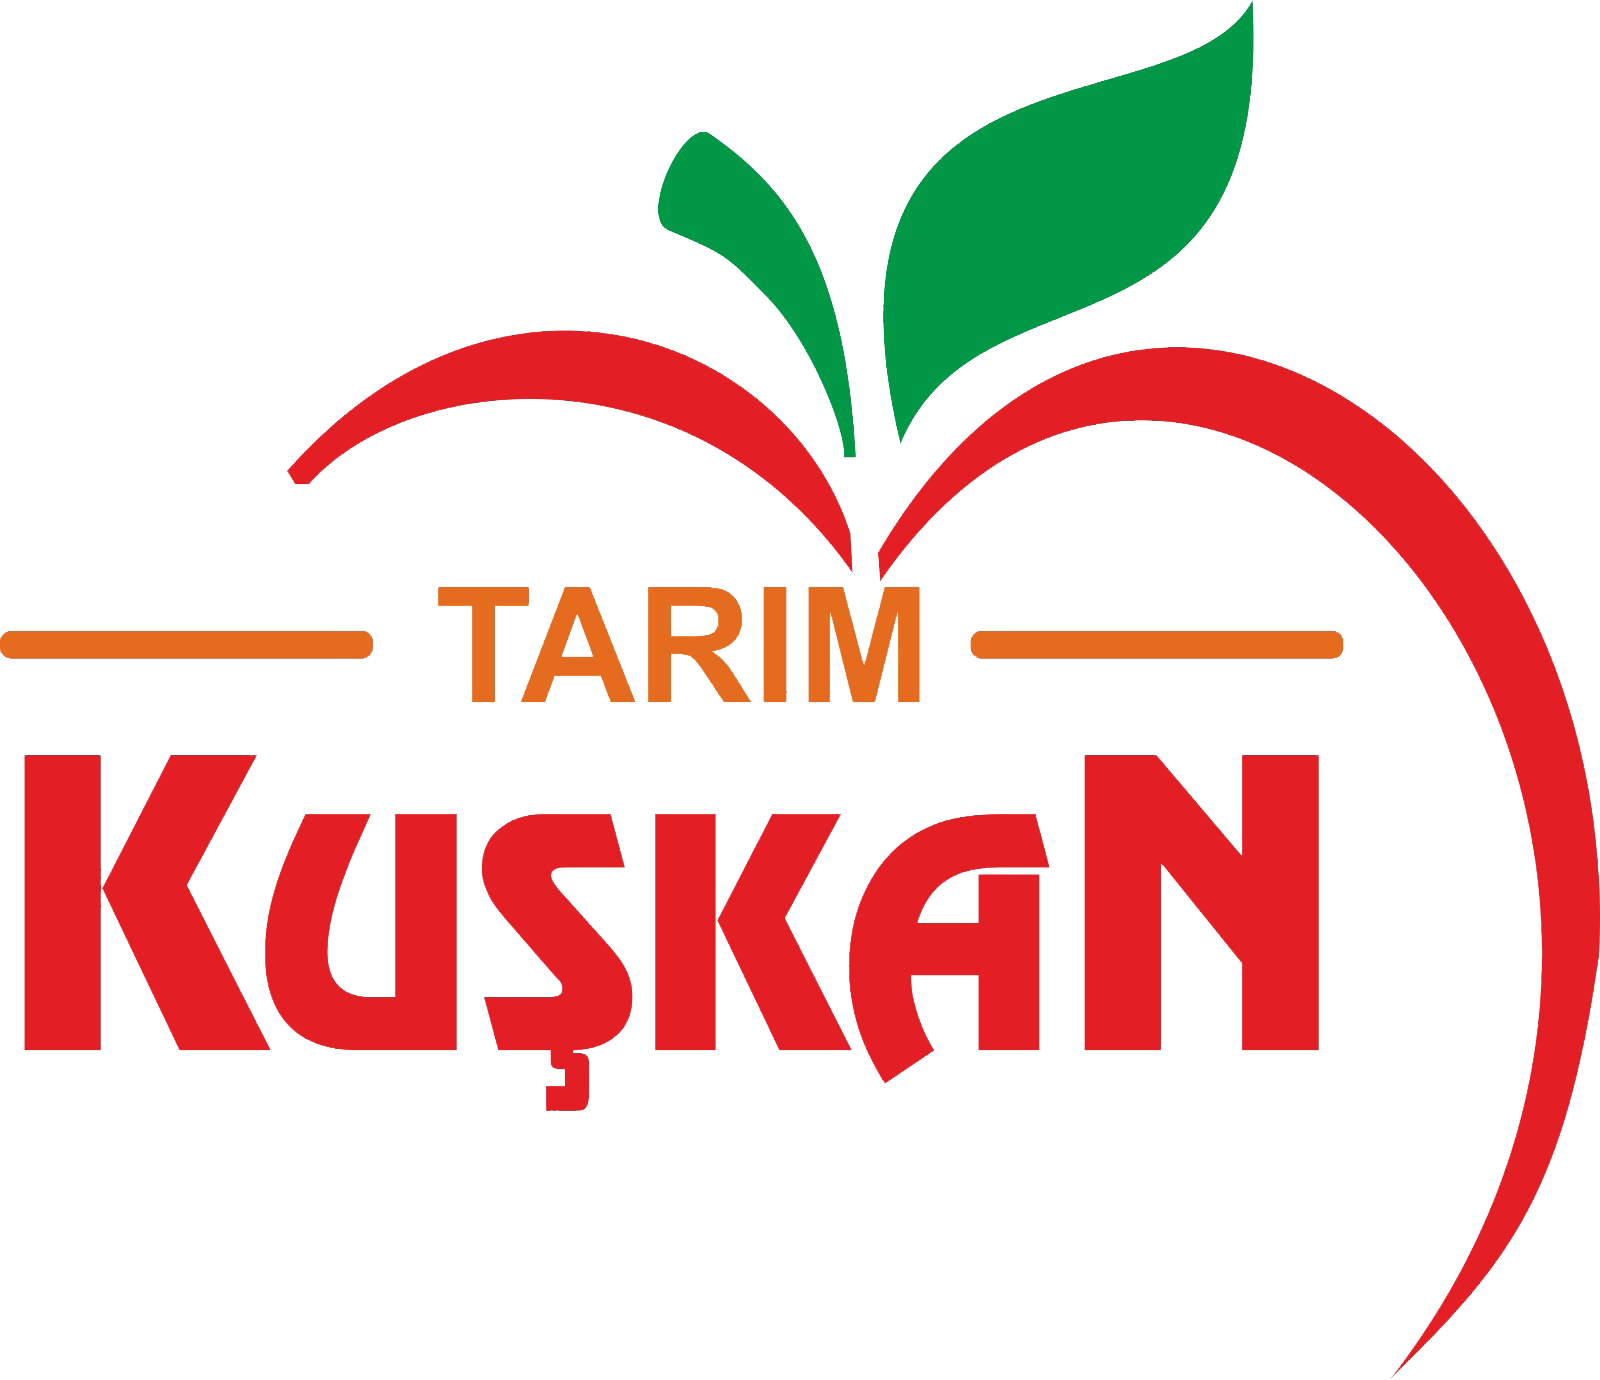 Services - image kuskan on https://kuskantarim.com